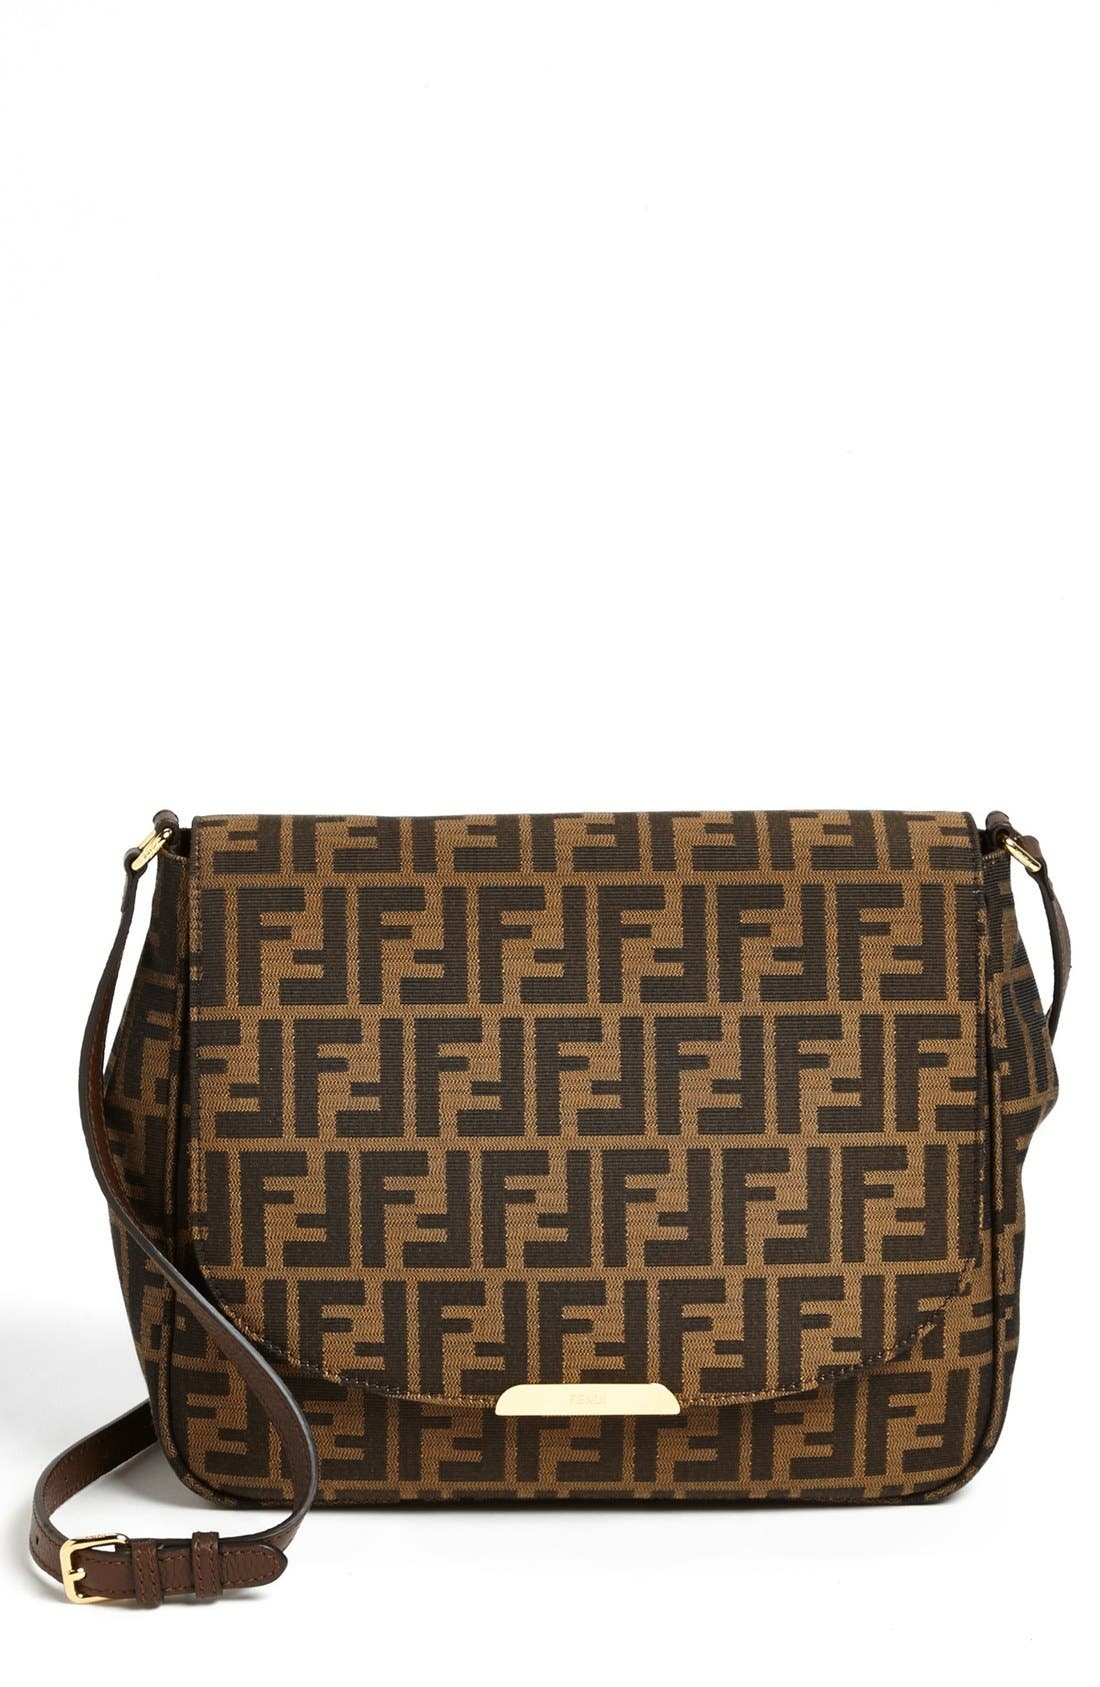 Alternate Image 1 Selected - Fendi 'Zucca - Large' Logo Jacquard Crossbody Bag